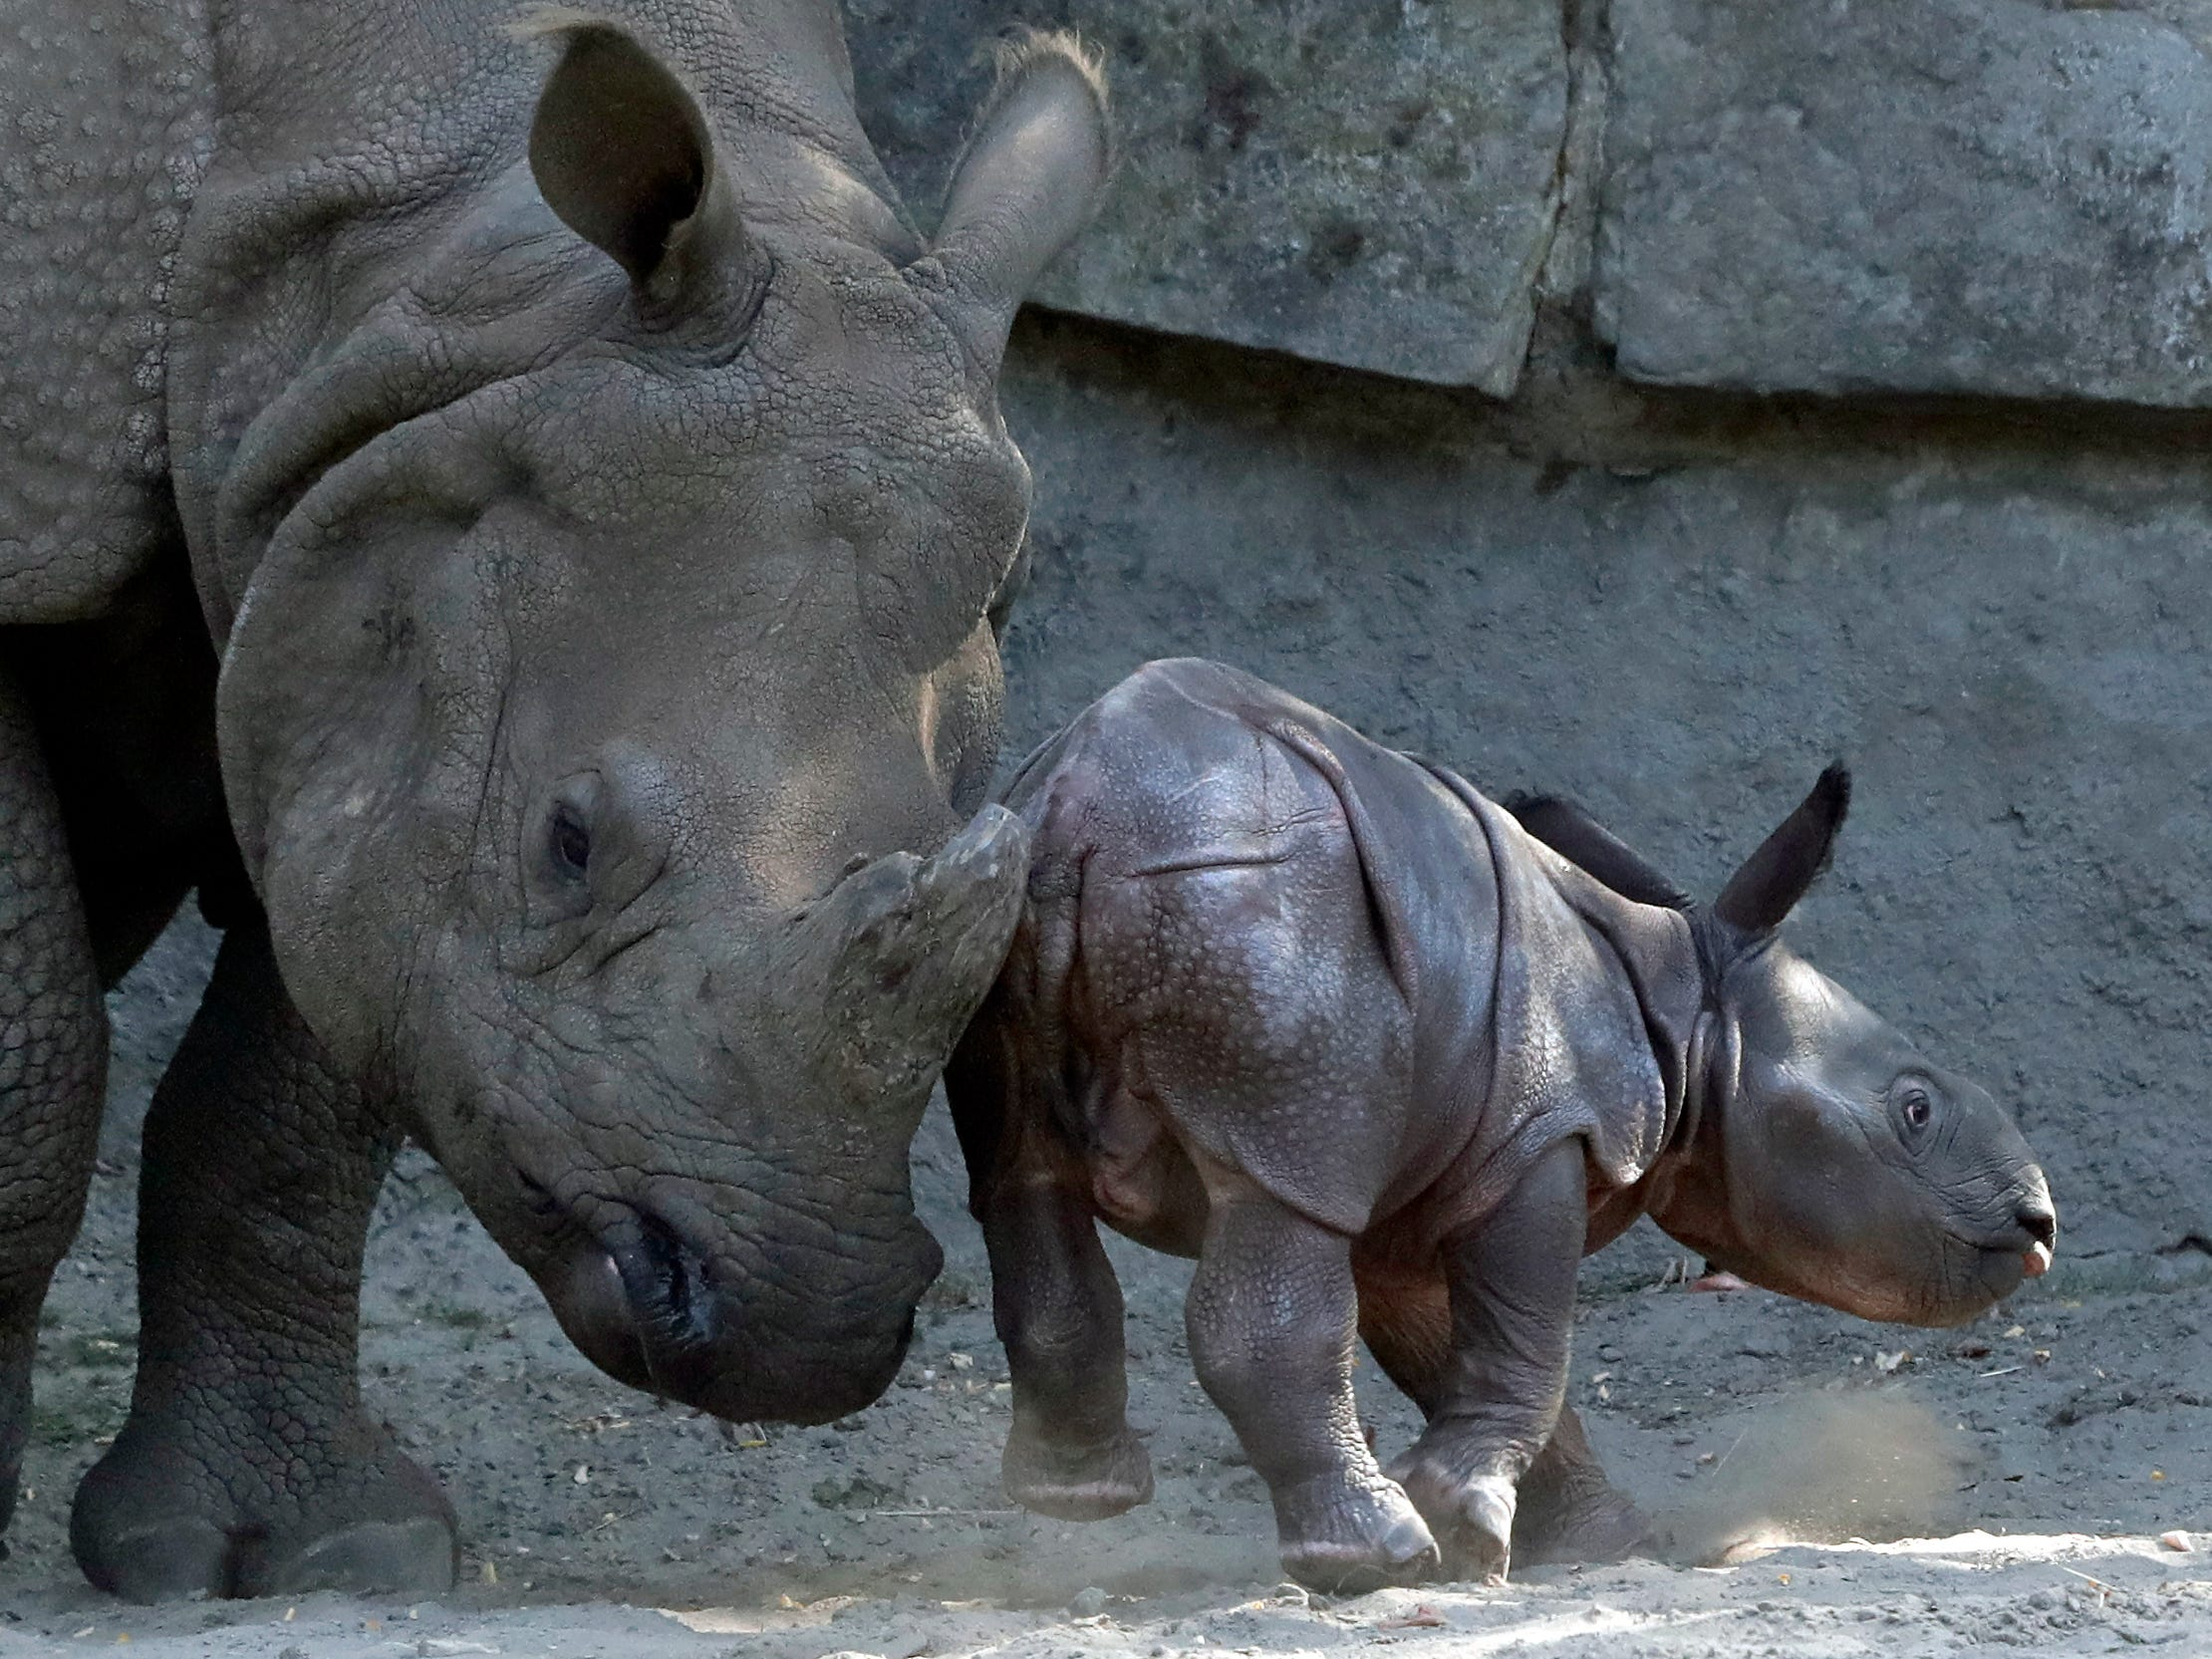 The great one-horned rhinoceros Betty, left, pushes her newborn son as they appear at their enclosure at the Zoo in Berlin, Germany, Thursday, Sept. 6, 2018. After a gestation period of 428 days the yet-nameless cub was born in the morning the previous day.